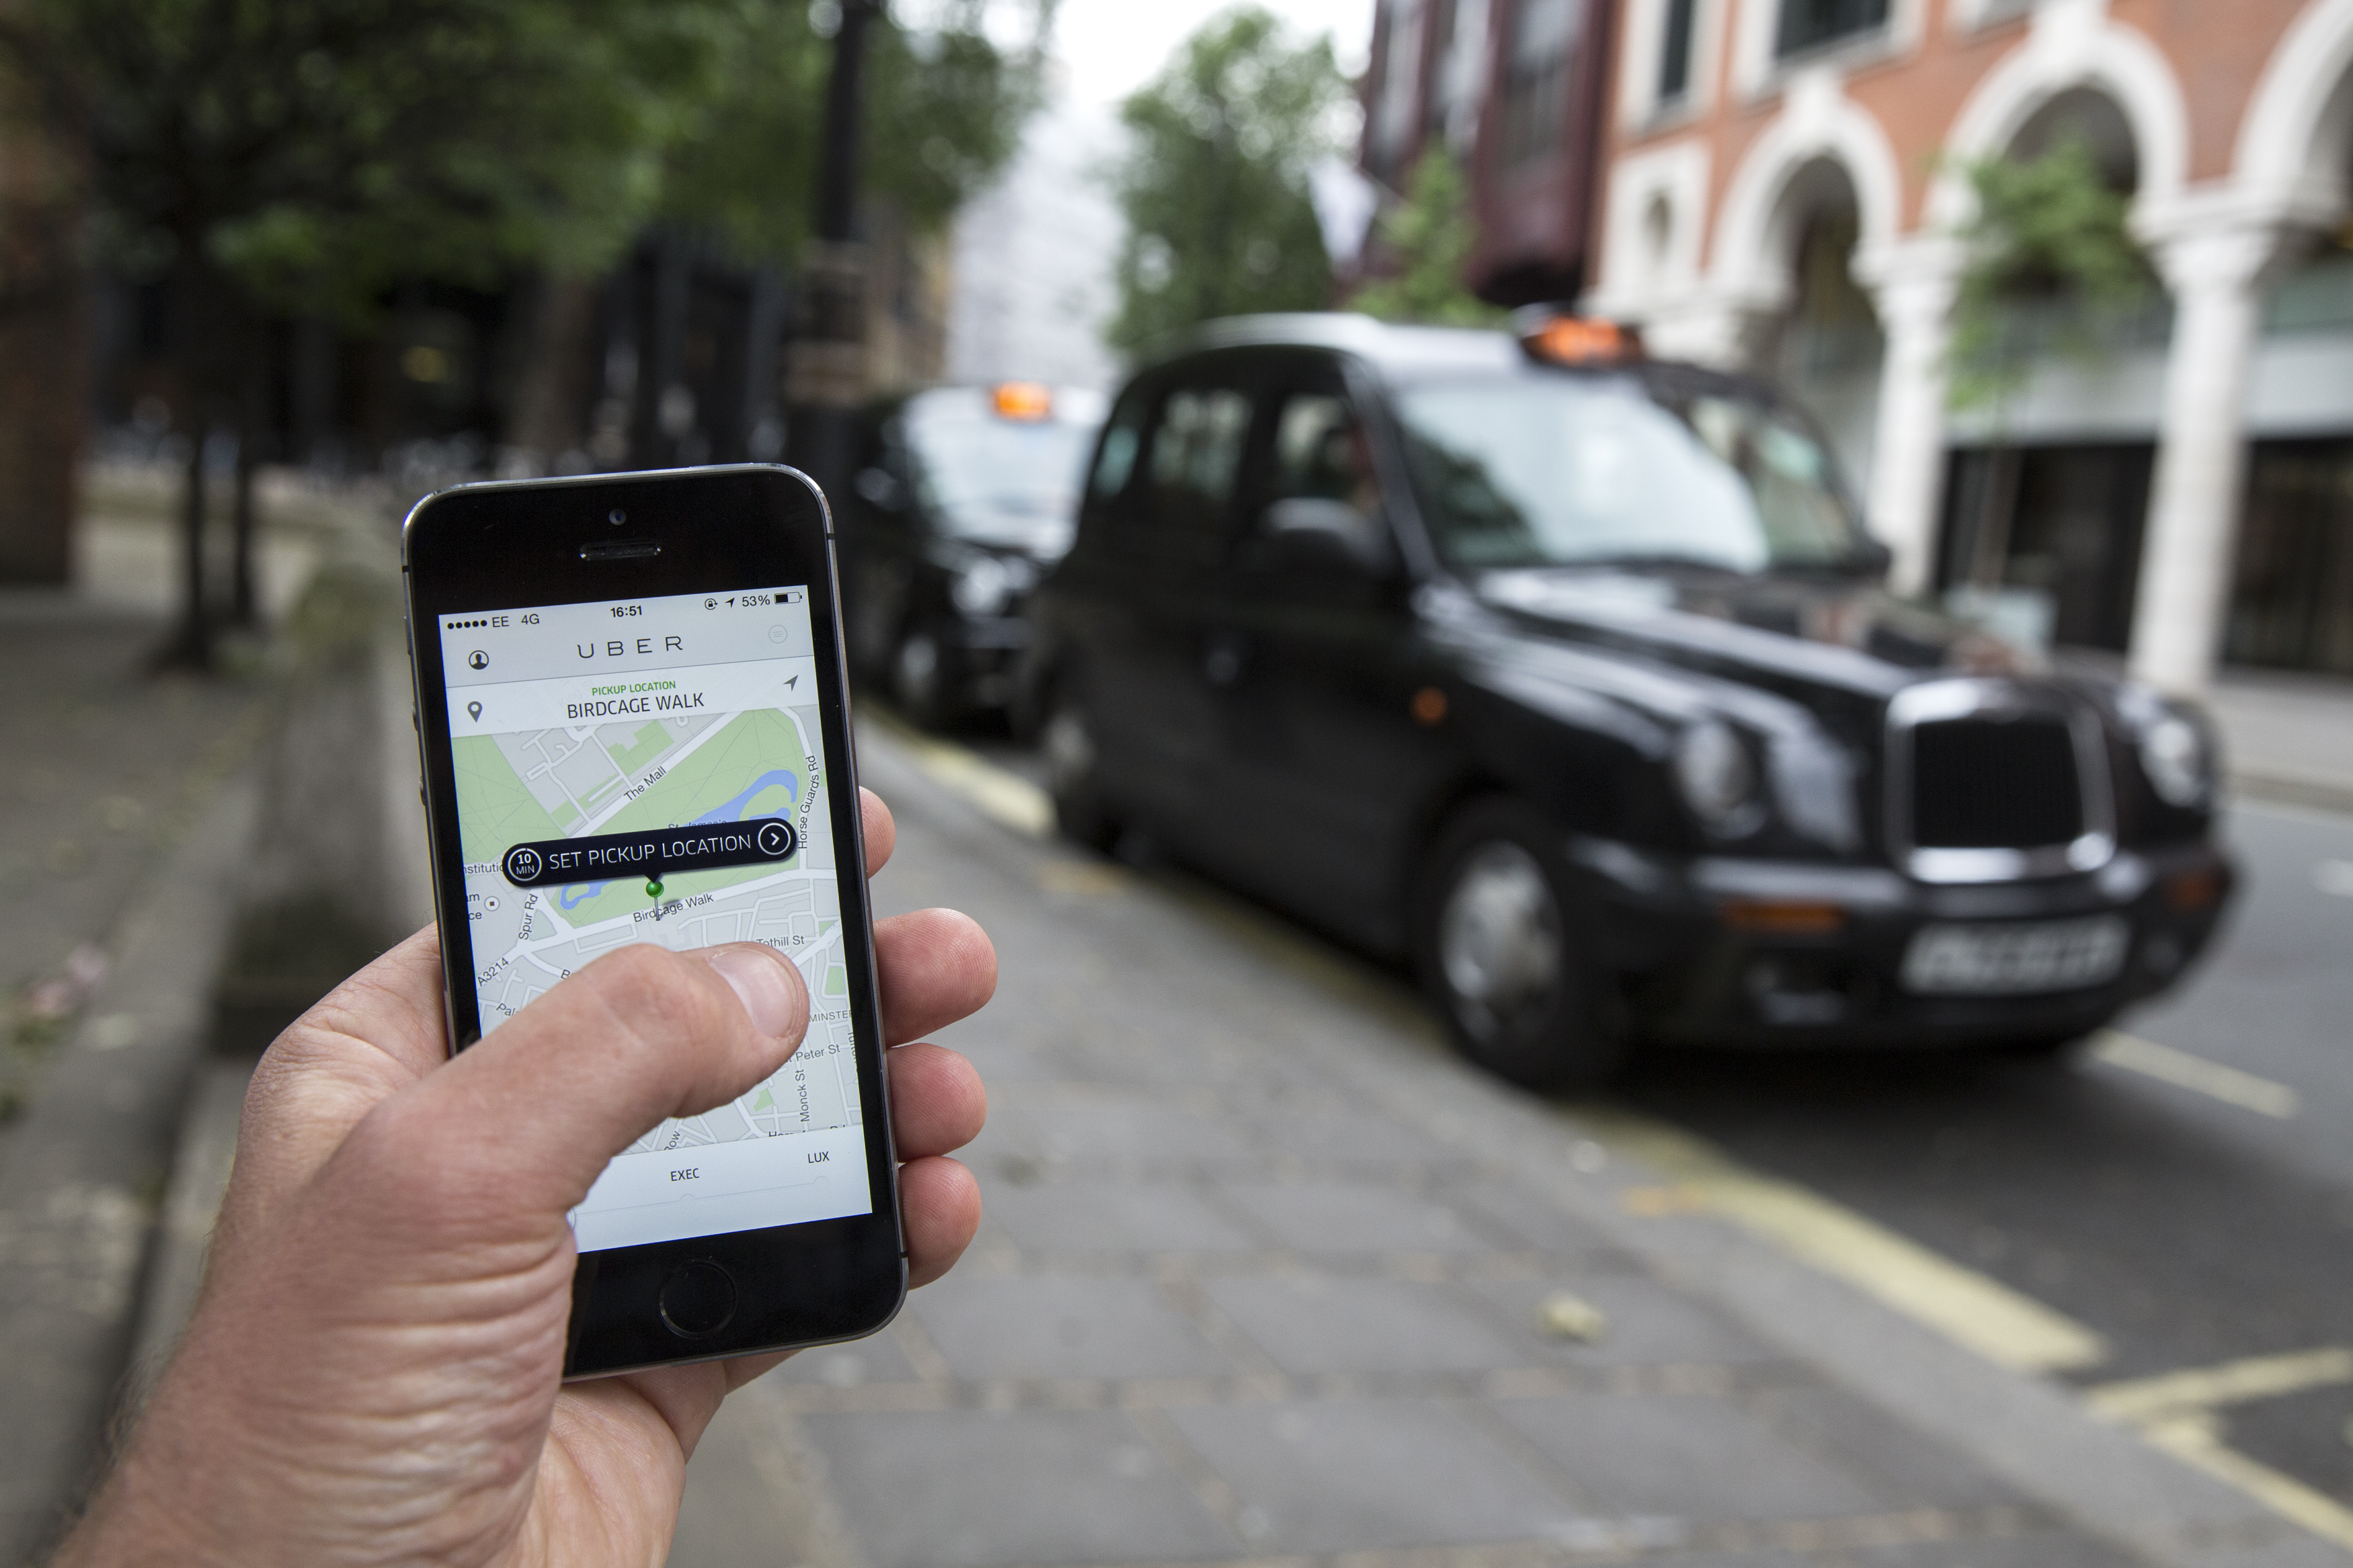 The trouble with 'The Trouble with Uber'